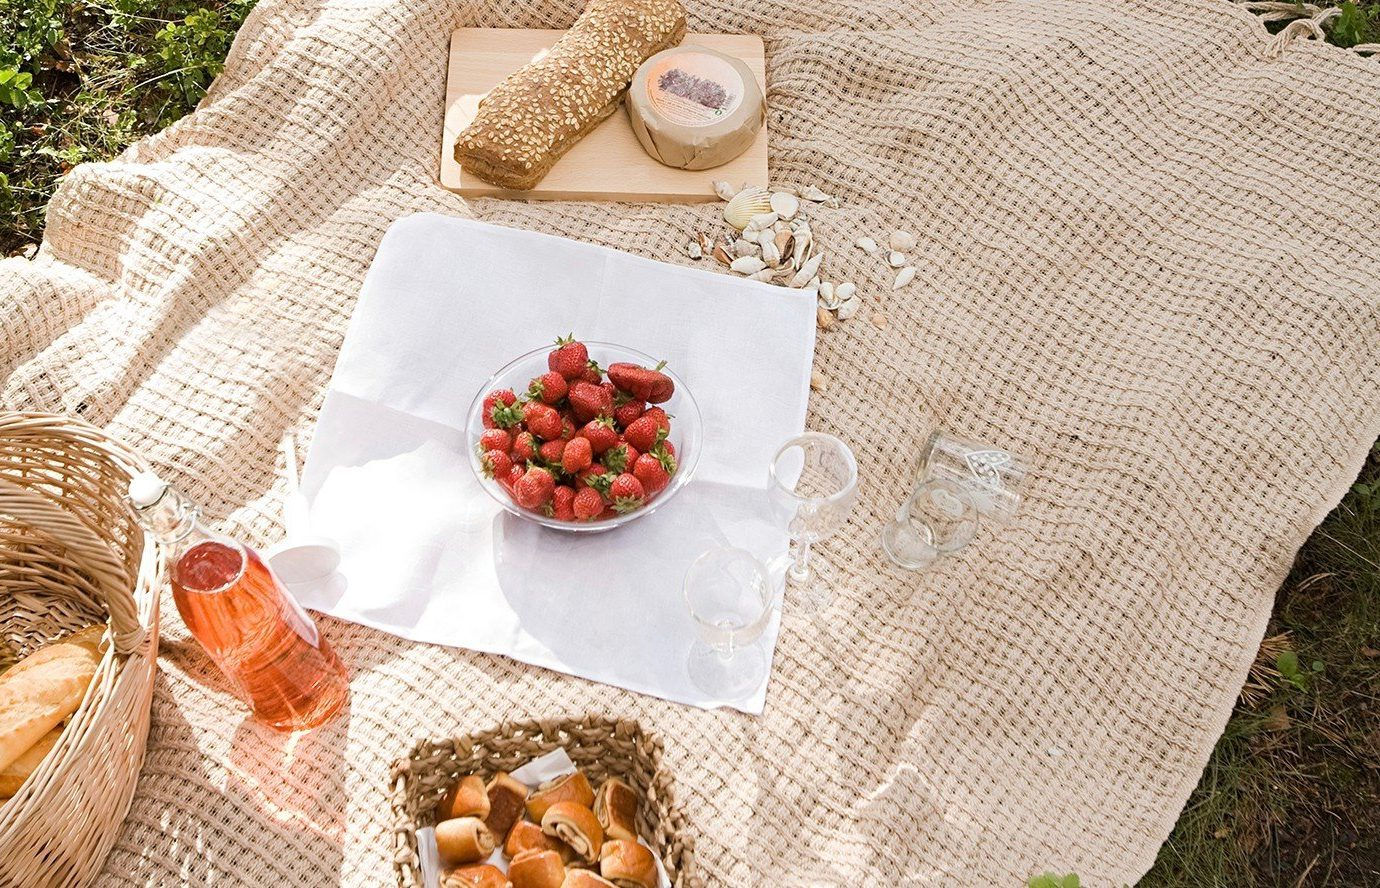 Outdoors + Adventure food art flower Picnic cloth tablecloth textile meal pattern autumn different